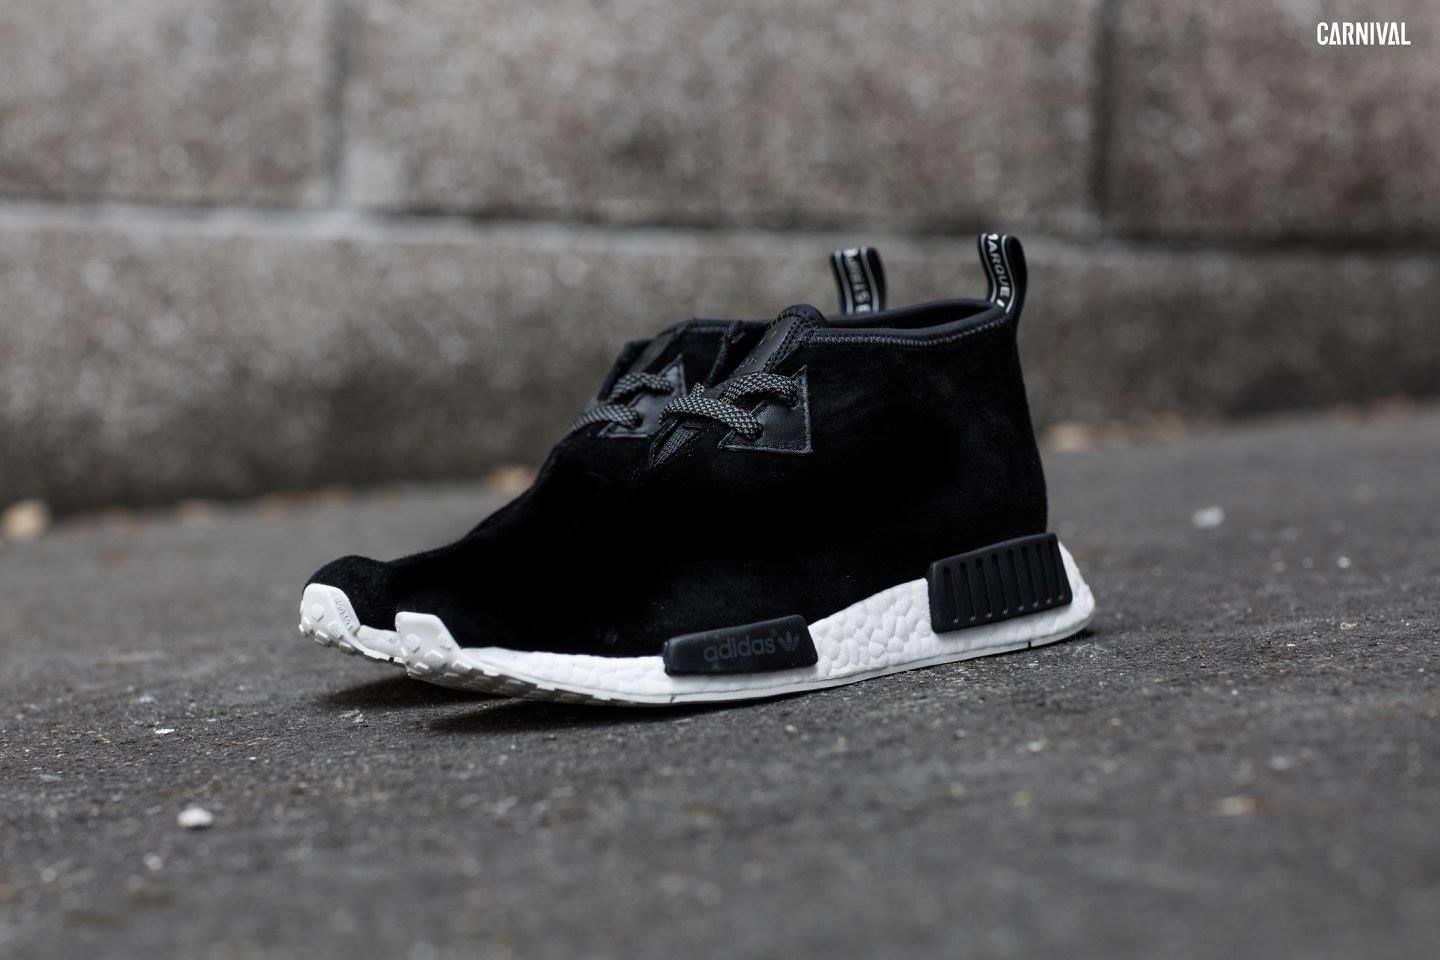 Adidas NMD Chukka C1 Black UK 10 (US 10.5) NEW LIMITED